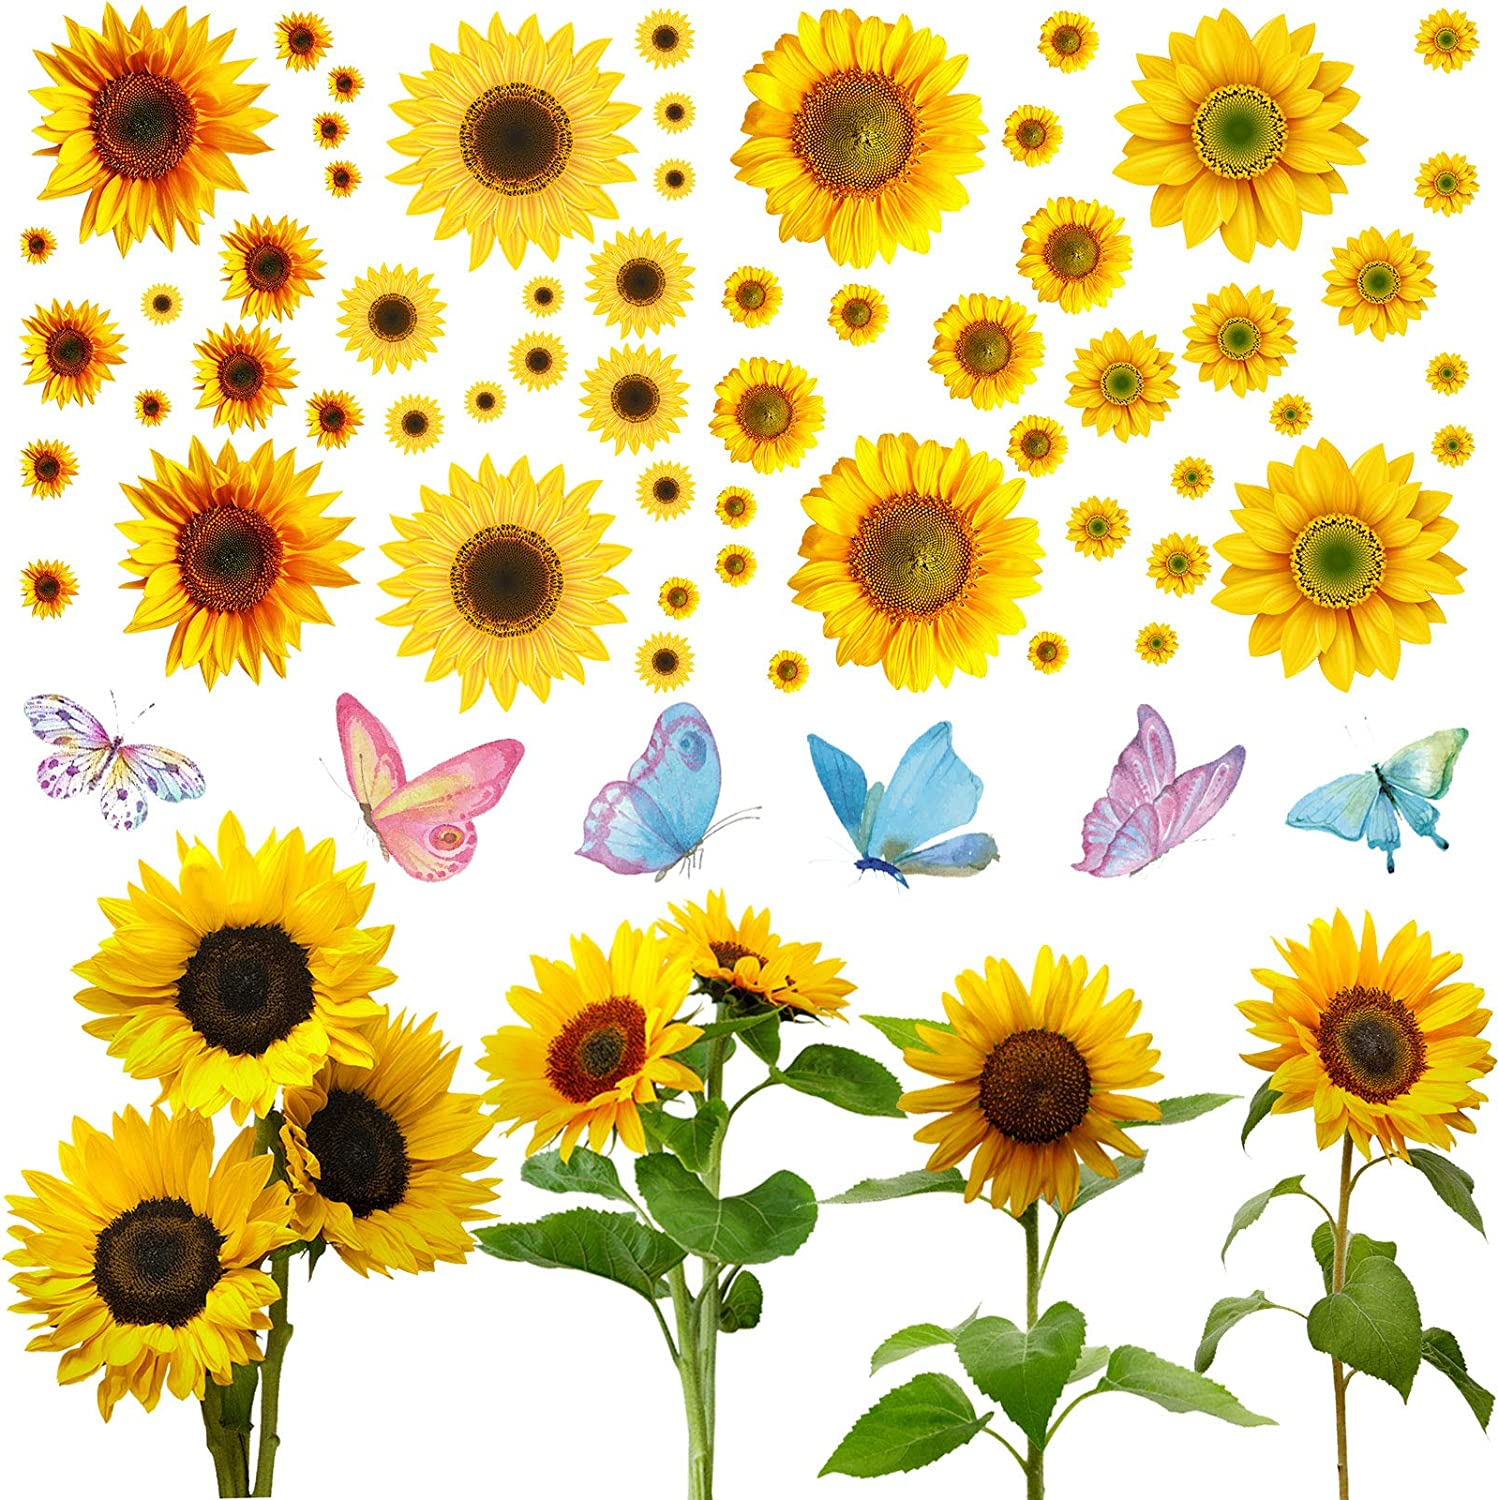 70 Pieces Sunflower Wall Stickers Set, Include 6 Colorful Butterfly Stickers 64 Pieces Multi-Size Sunflowers Sticker Removable Waterproof Decorative Sticker for Baby Living Room Kitchen Home Decor